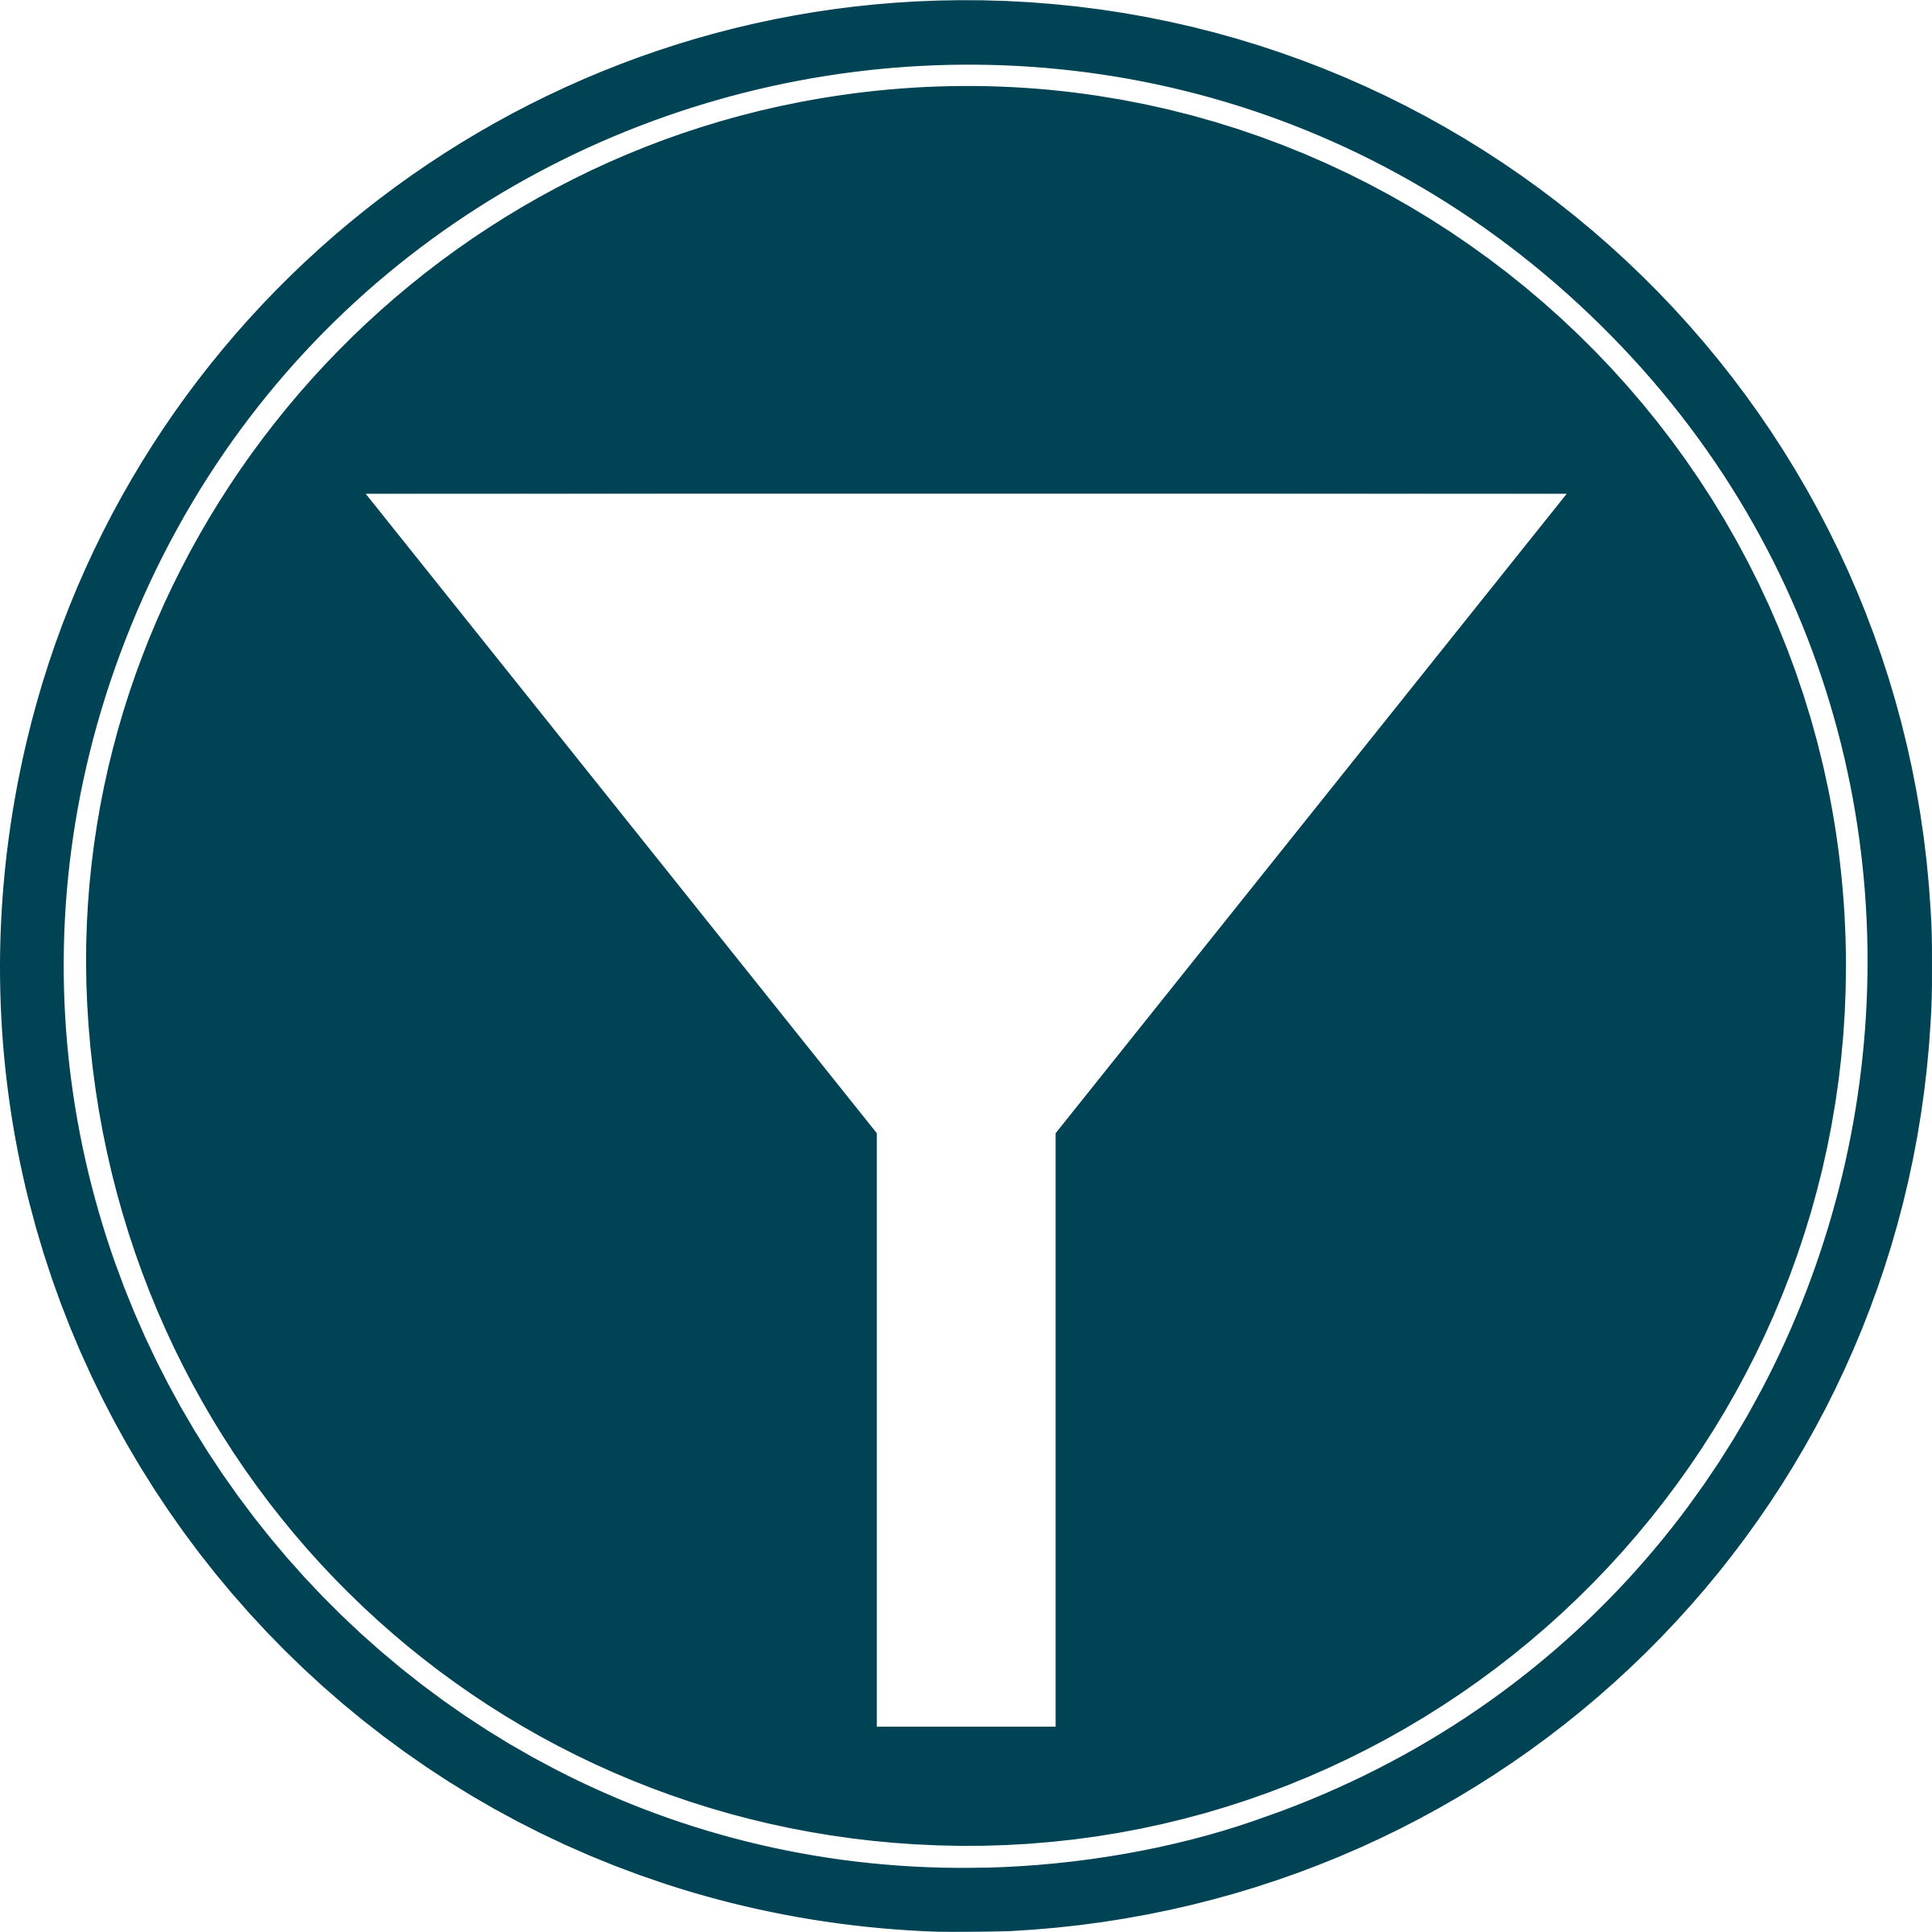 Funnel vectorized by Firkin